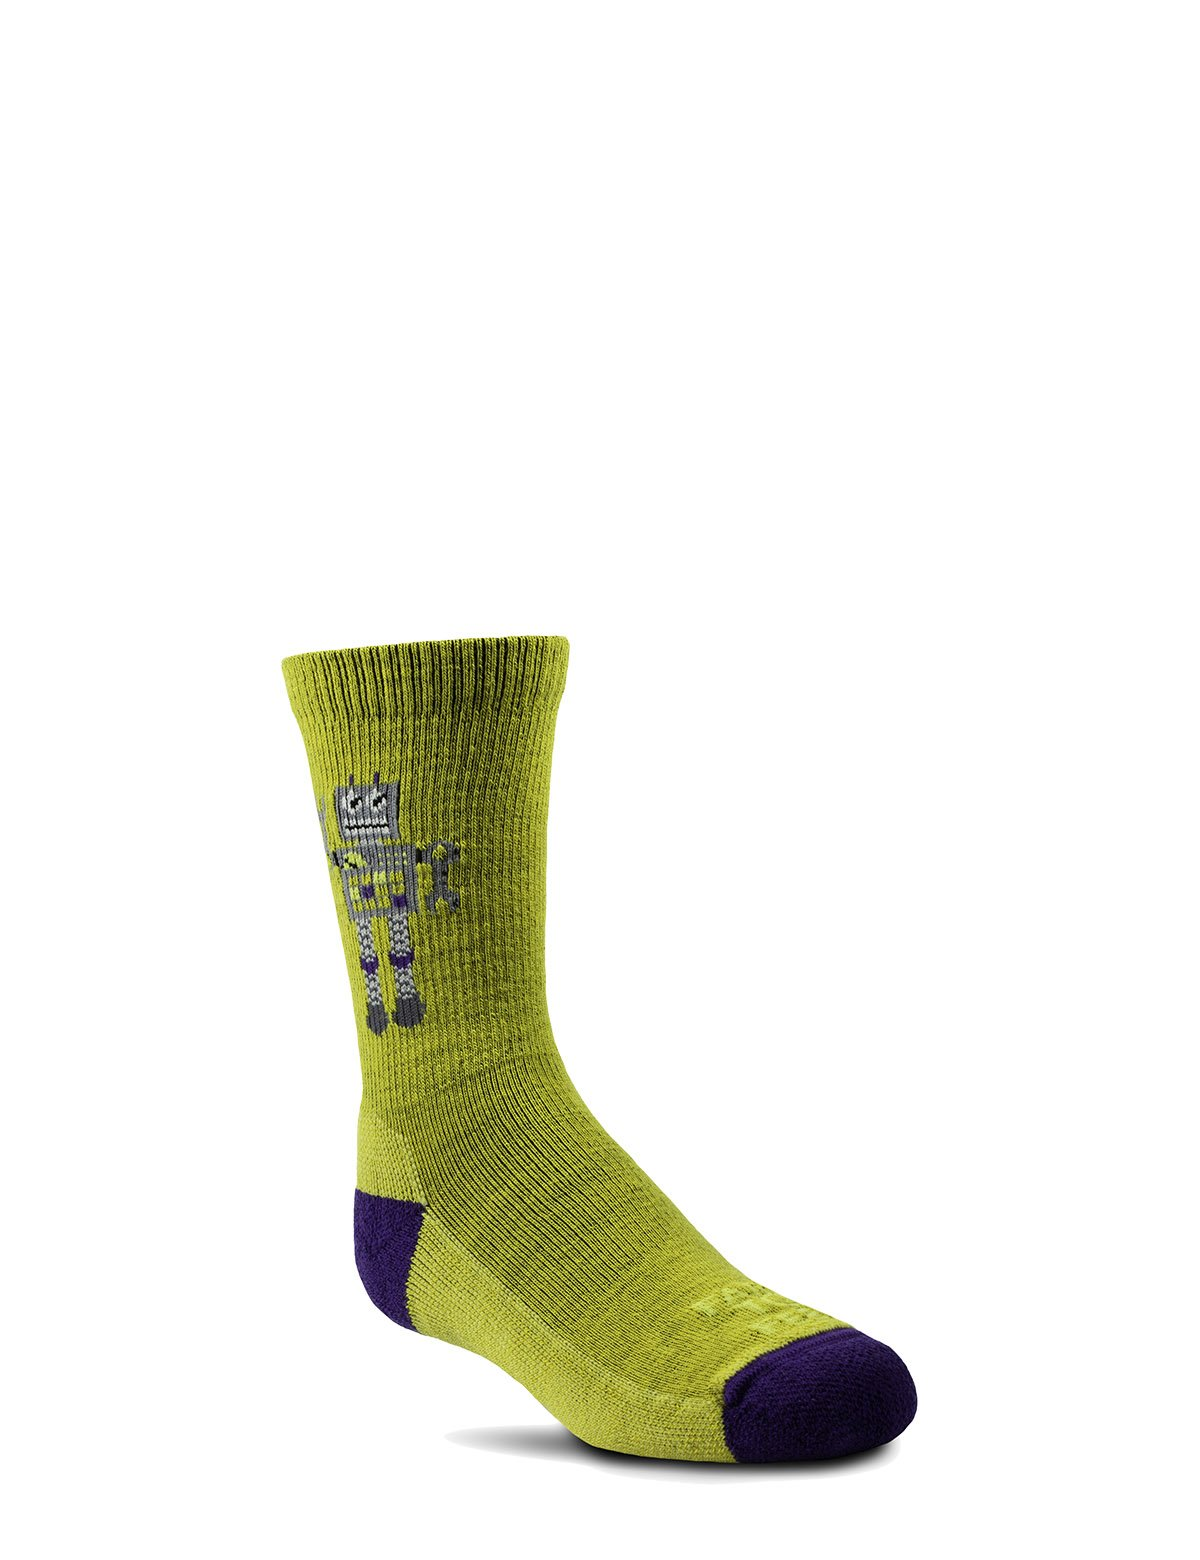 Farm to Feet Kids U.S. Merino Wool Light Cushion Socks - Robot